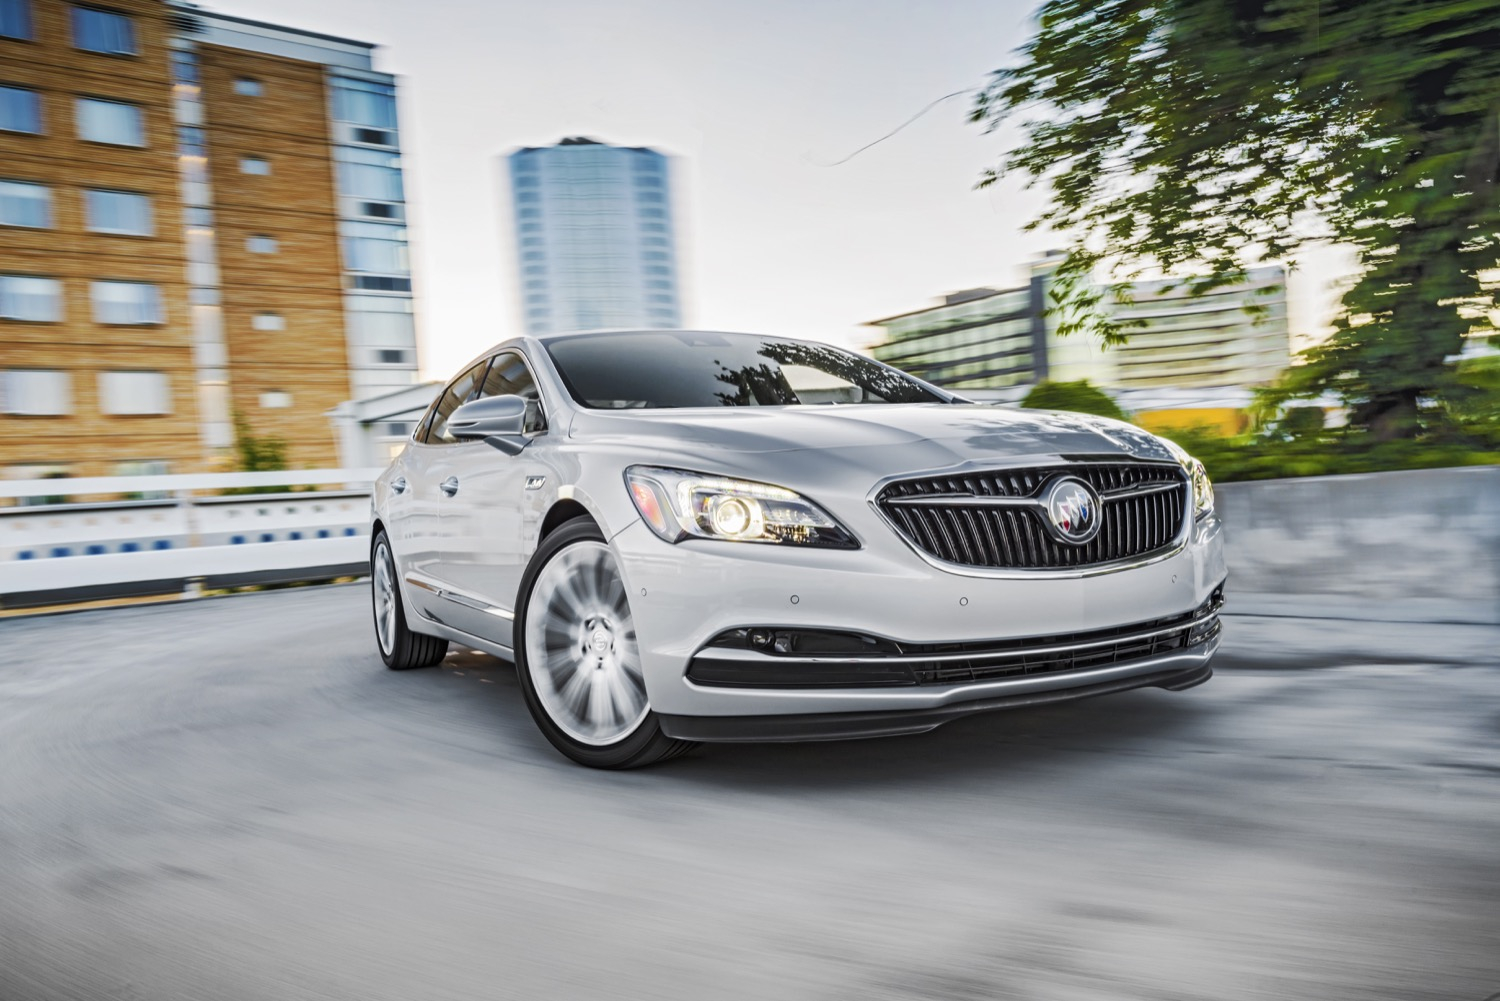 2017 Buick Lacrosse Review | Gm Authority 2022 Buick Lucerne Reliability, Wheels, Grill